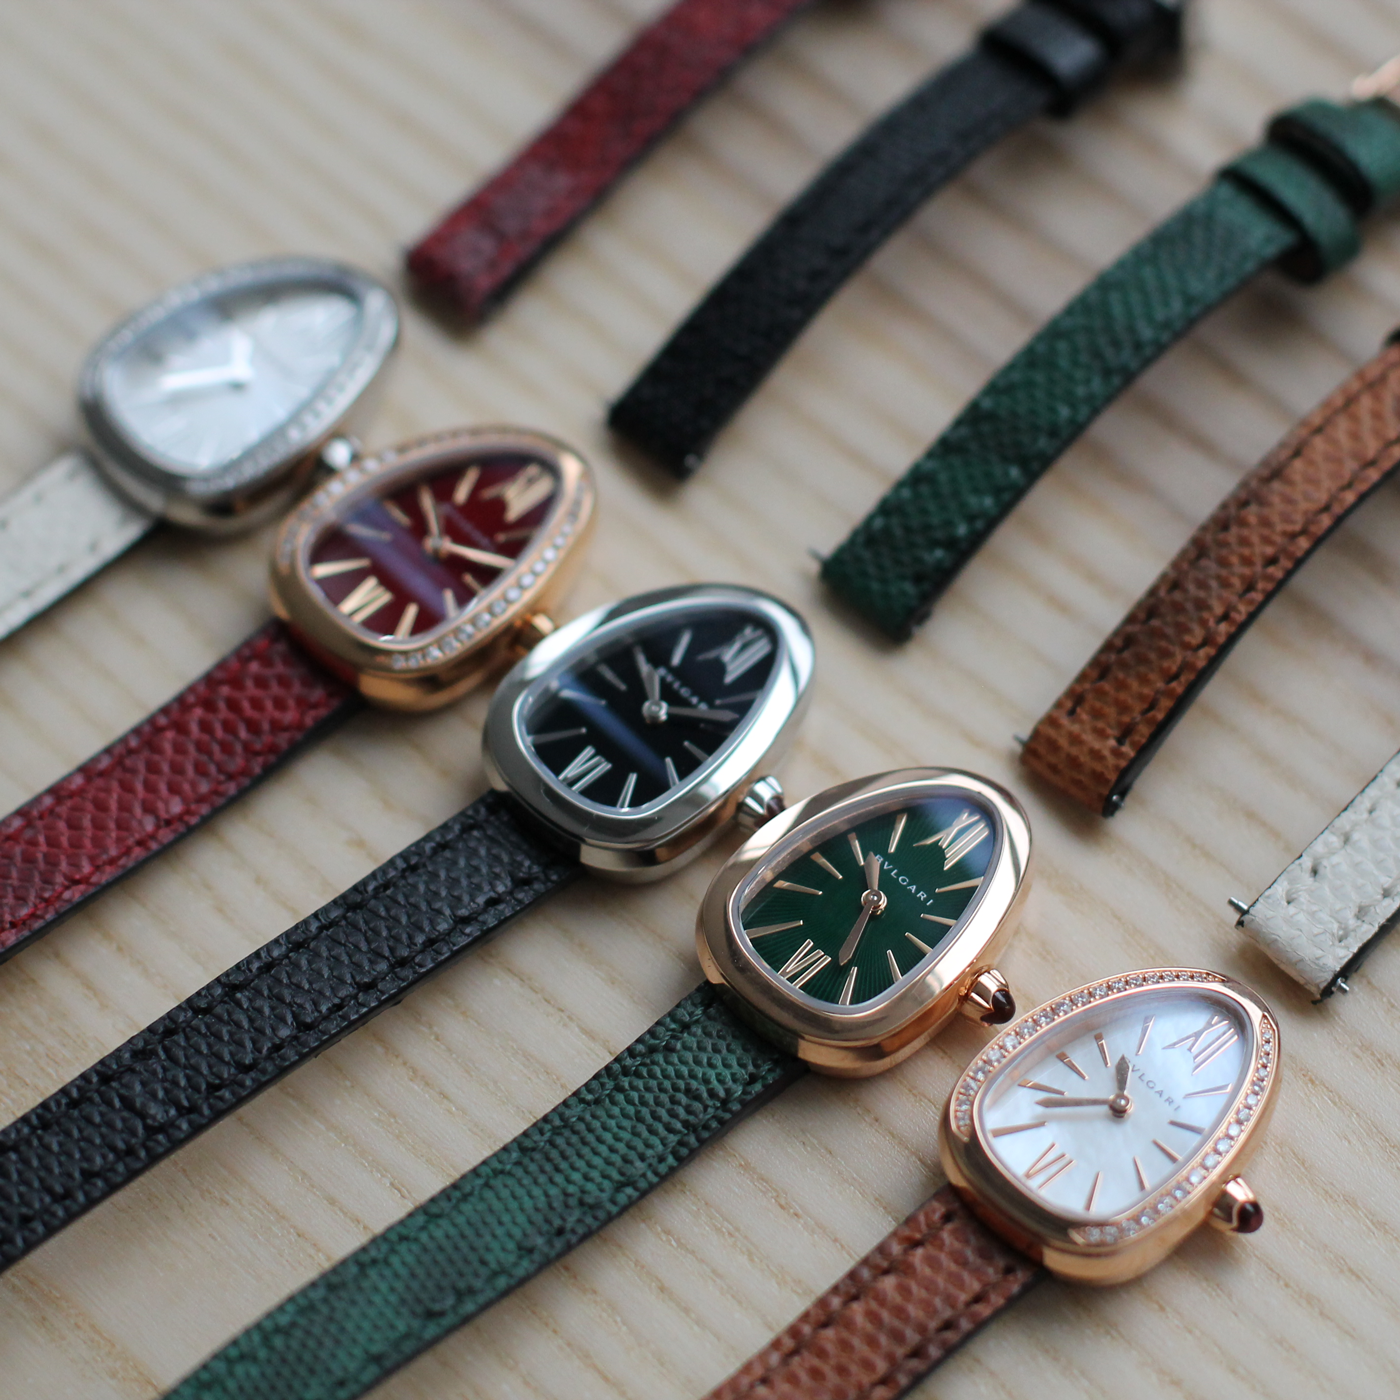 Six of the best easy-to-change watch straps